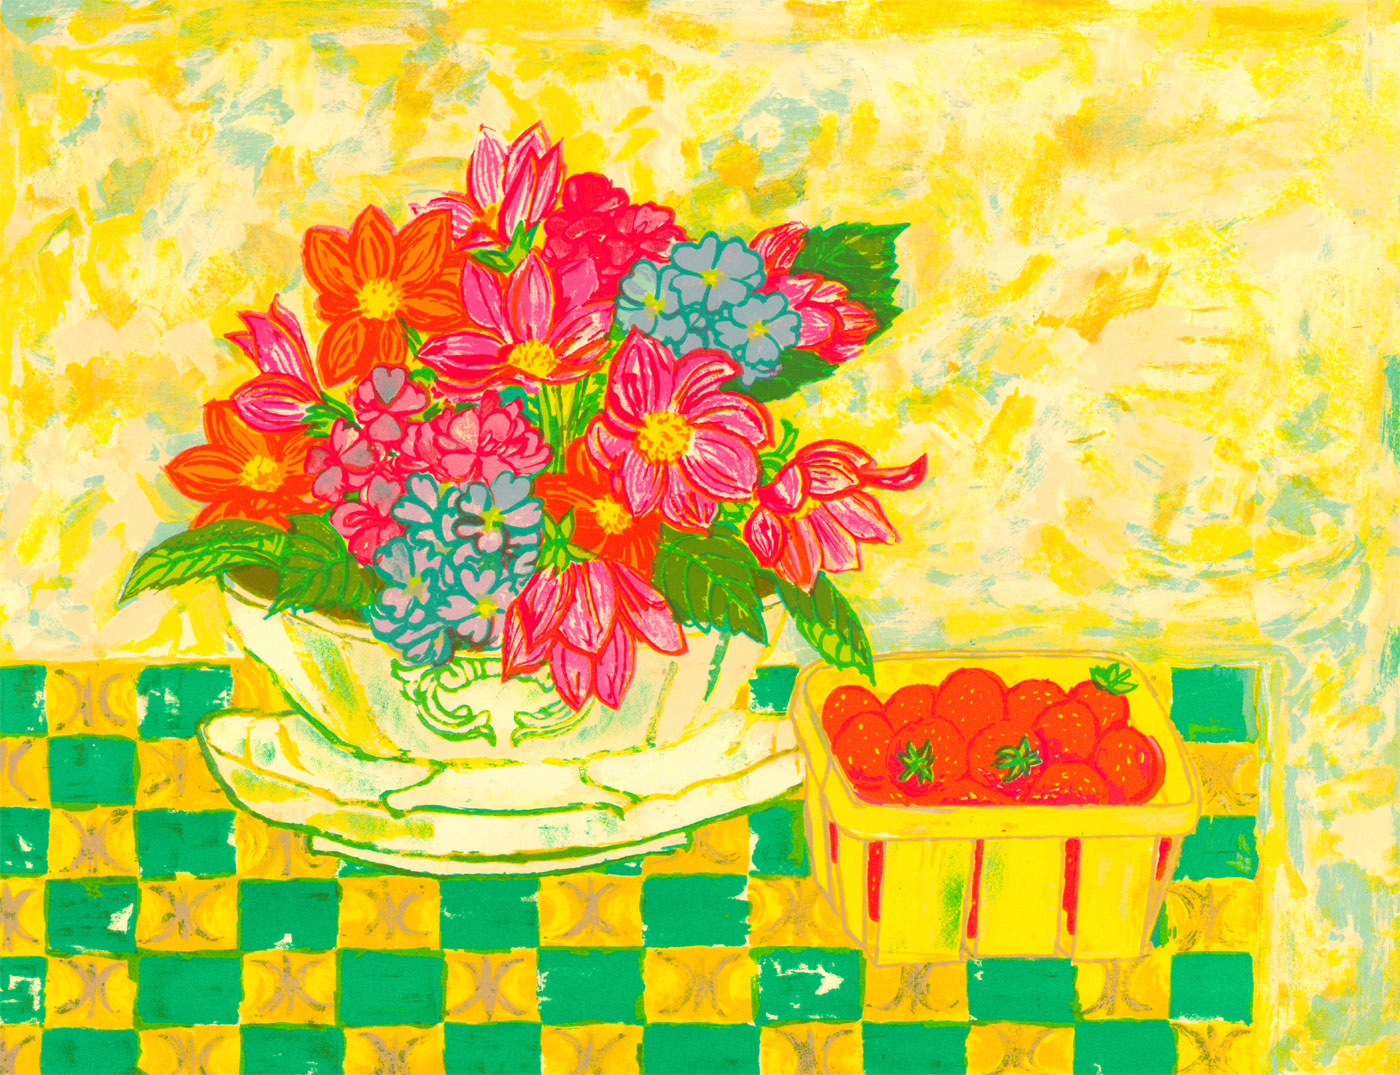 Contemporary, Signed, Limited Edition Lithograph - Still Life with Flowers